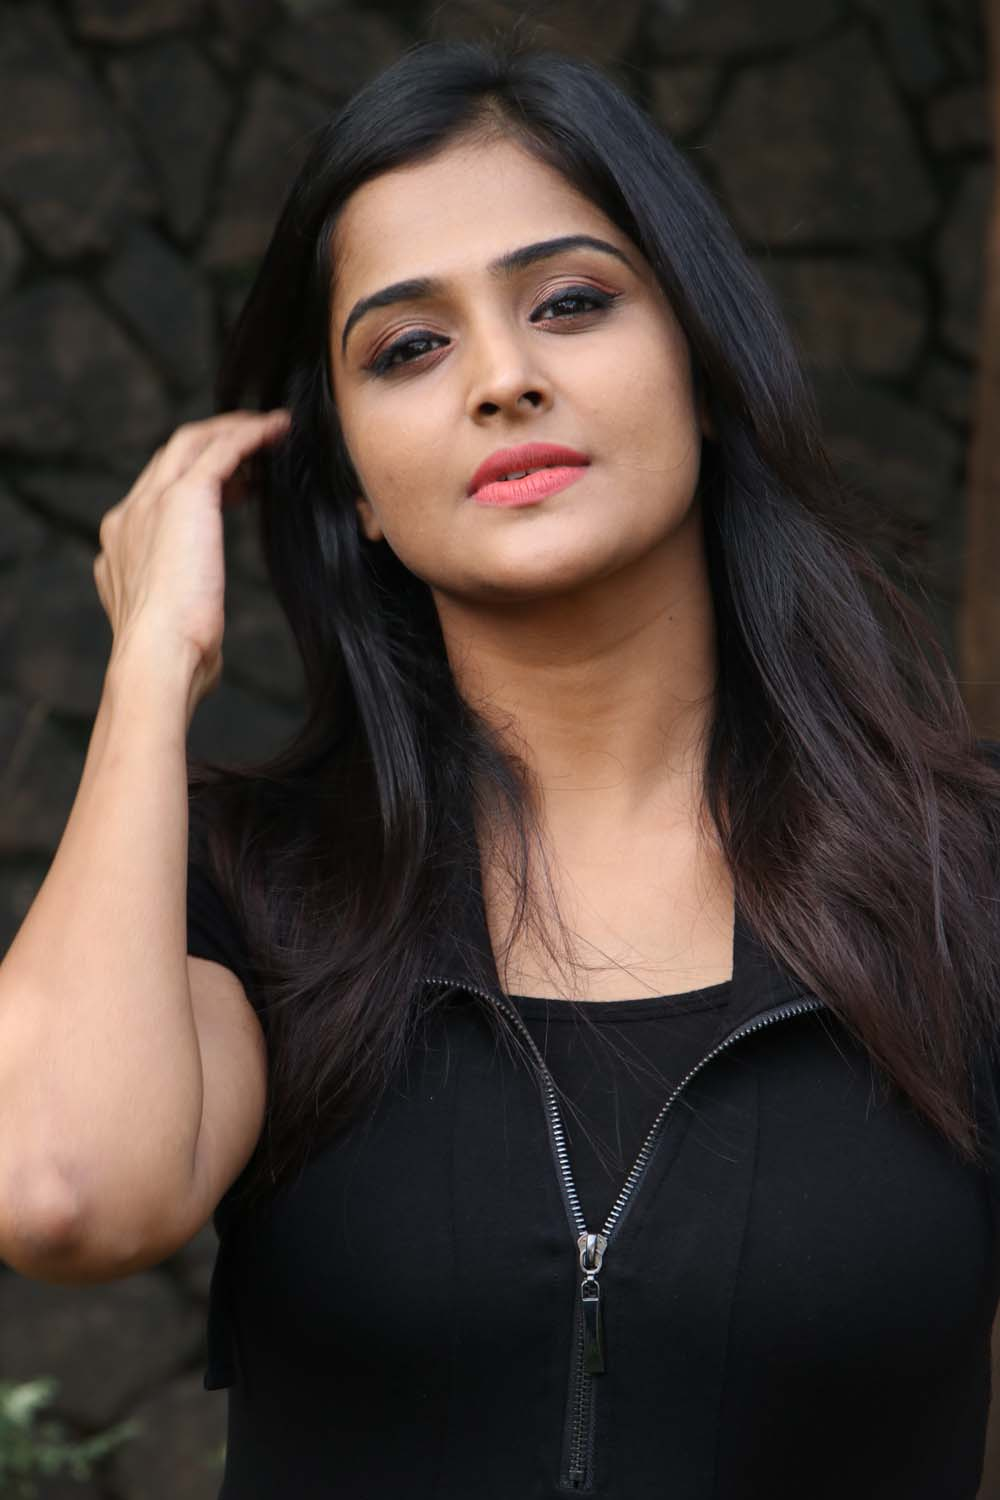 actress-ramya-nambeesan-new-photos-15 – tamilnext